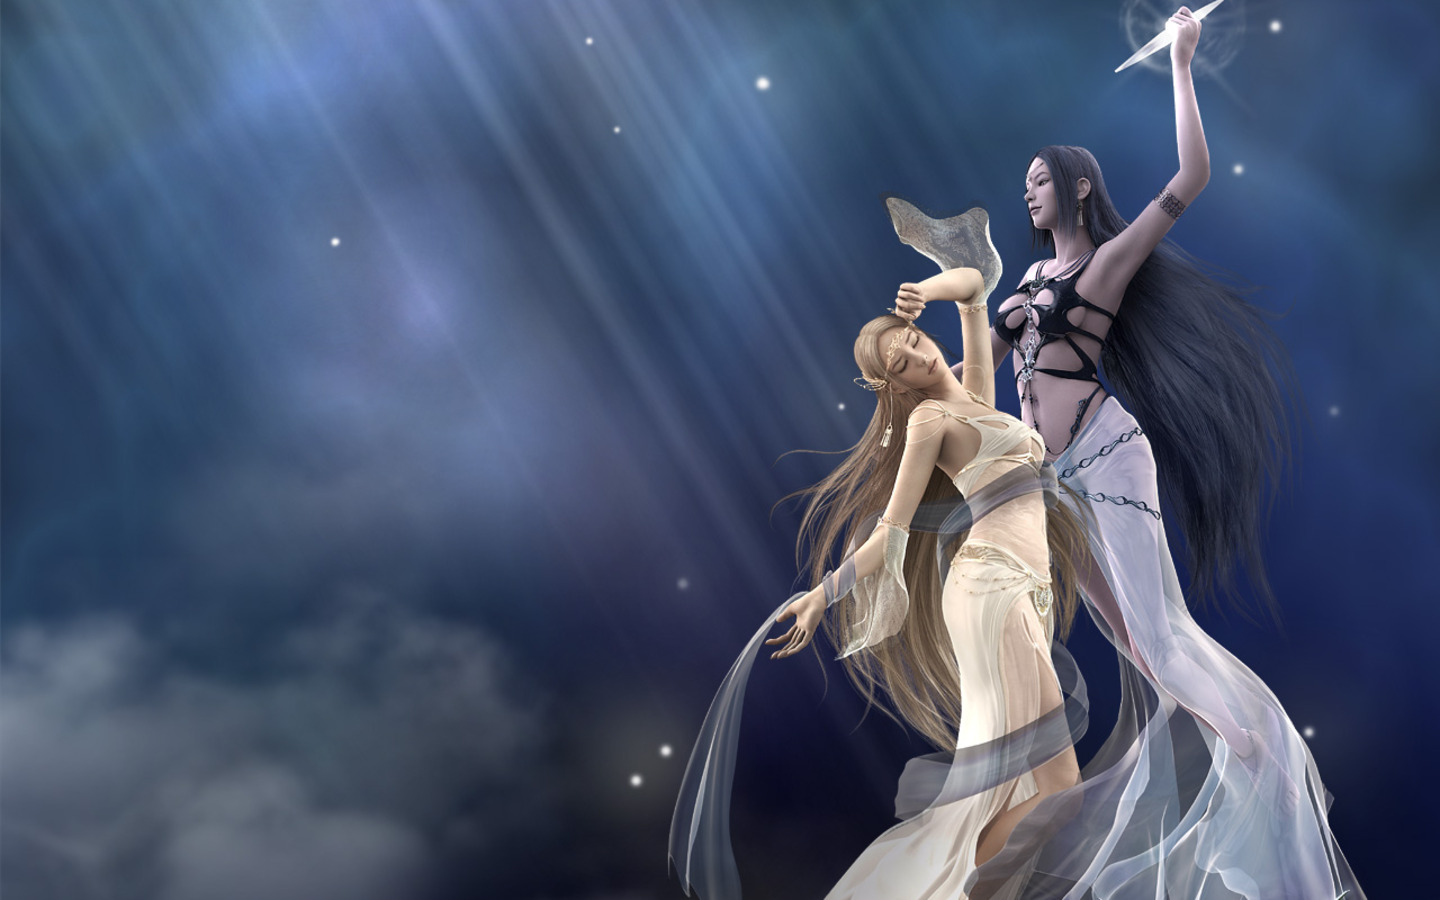 Fantasy Girls HD Wallpapers Fanatsy Images Cool 1440x900